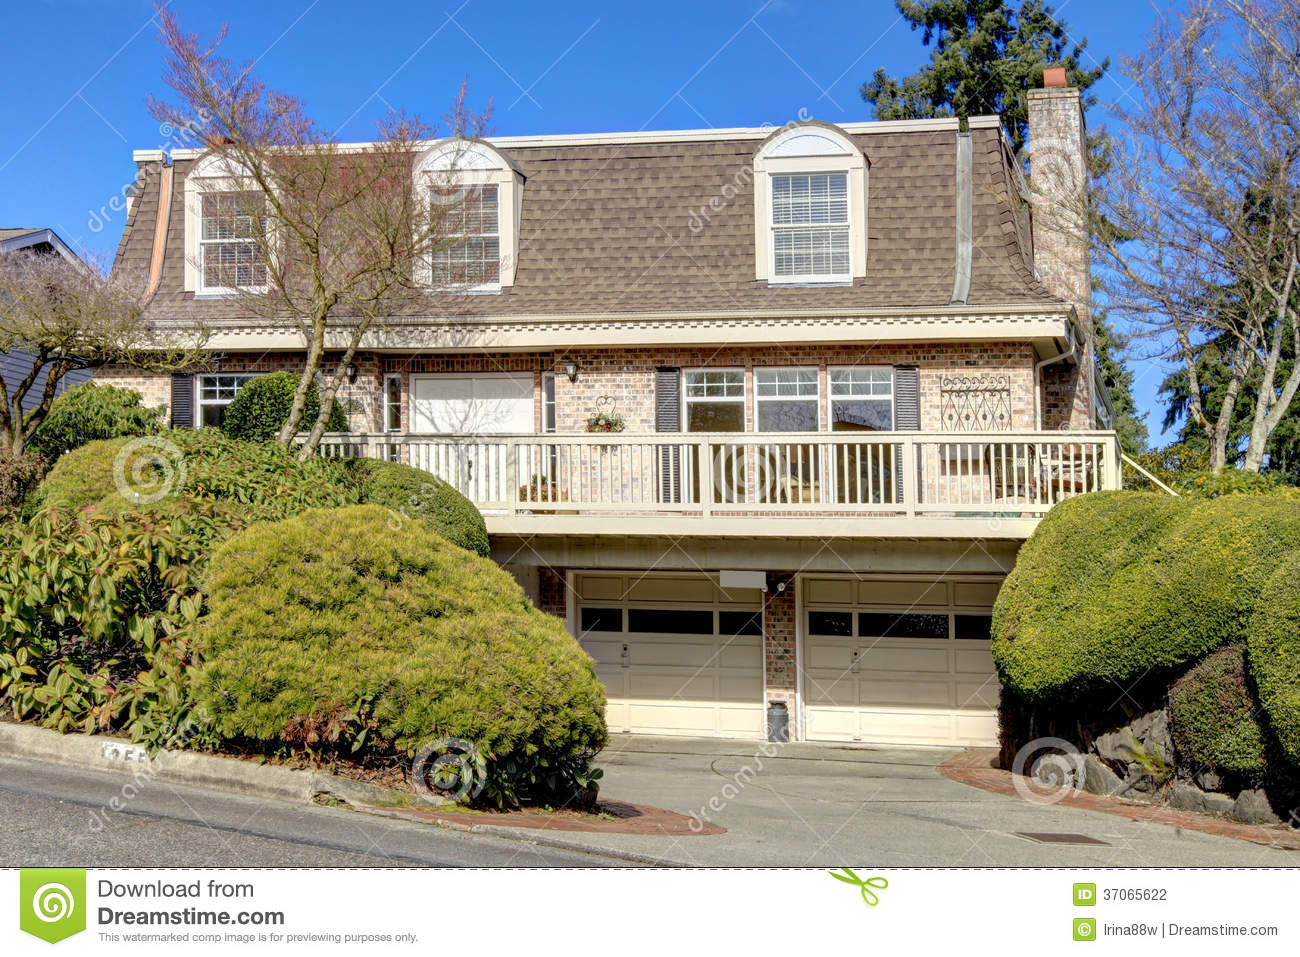 Big classic house with a balcony and arch windows stock photography image 37065622 - Houses with attic and balconies ...